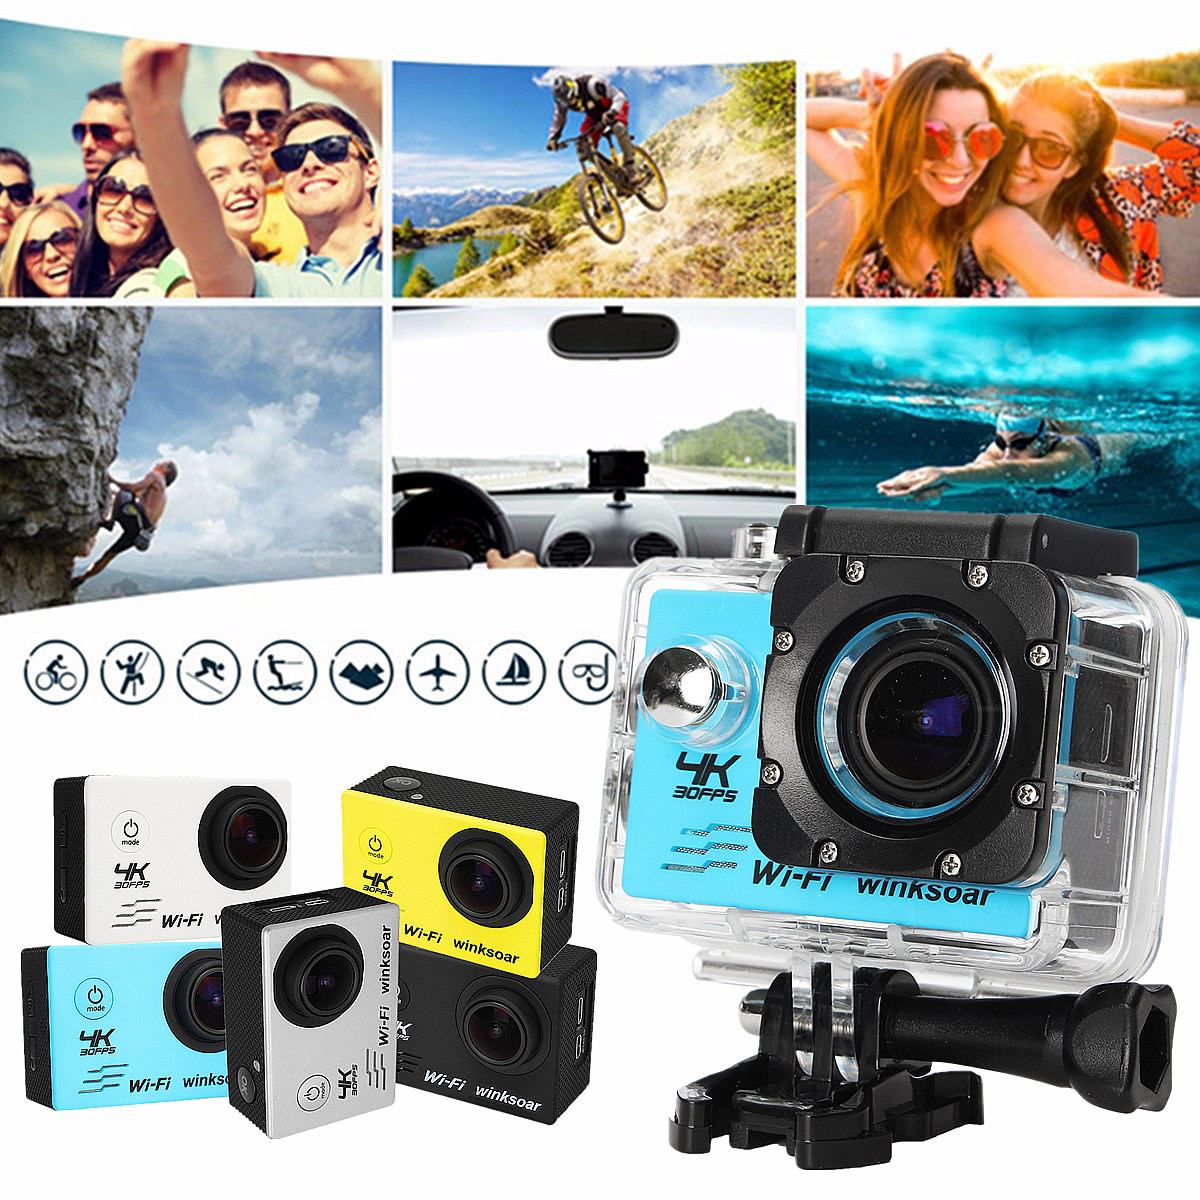 Waterproof 2 0'' LCD SJ8000 4K HD WiFi Sports DV Action Camera W/ Remote  Control White